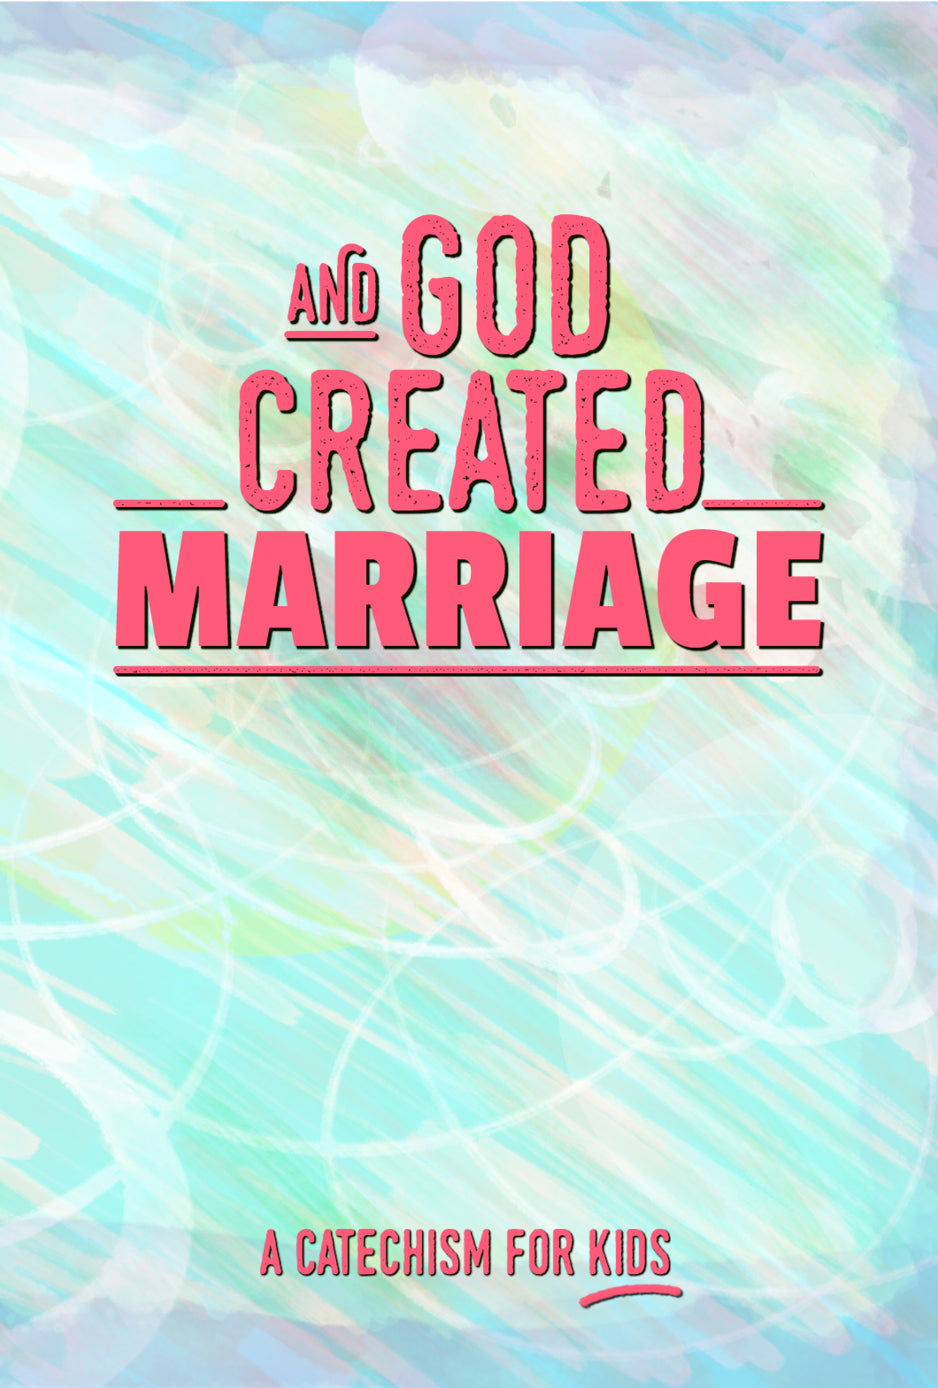 And God Created Marriage - Catechism for Kids-Book-PureDesignTees